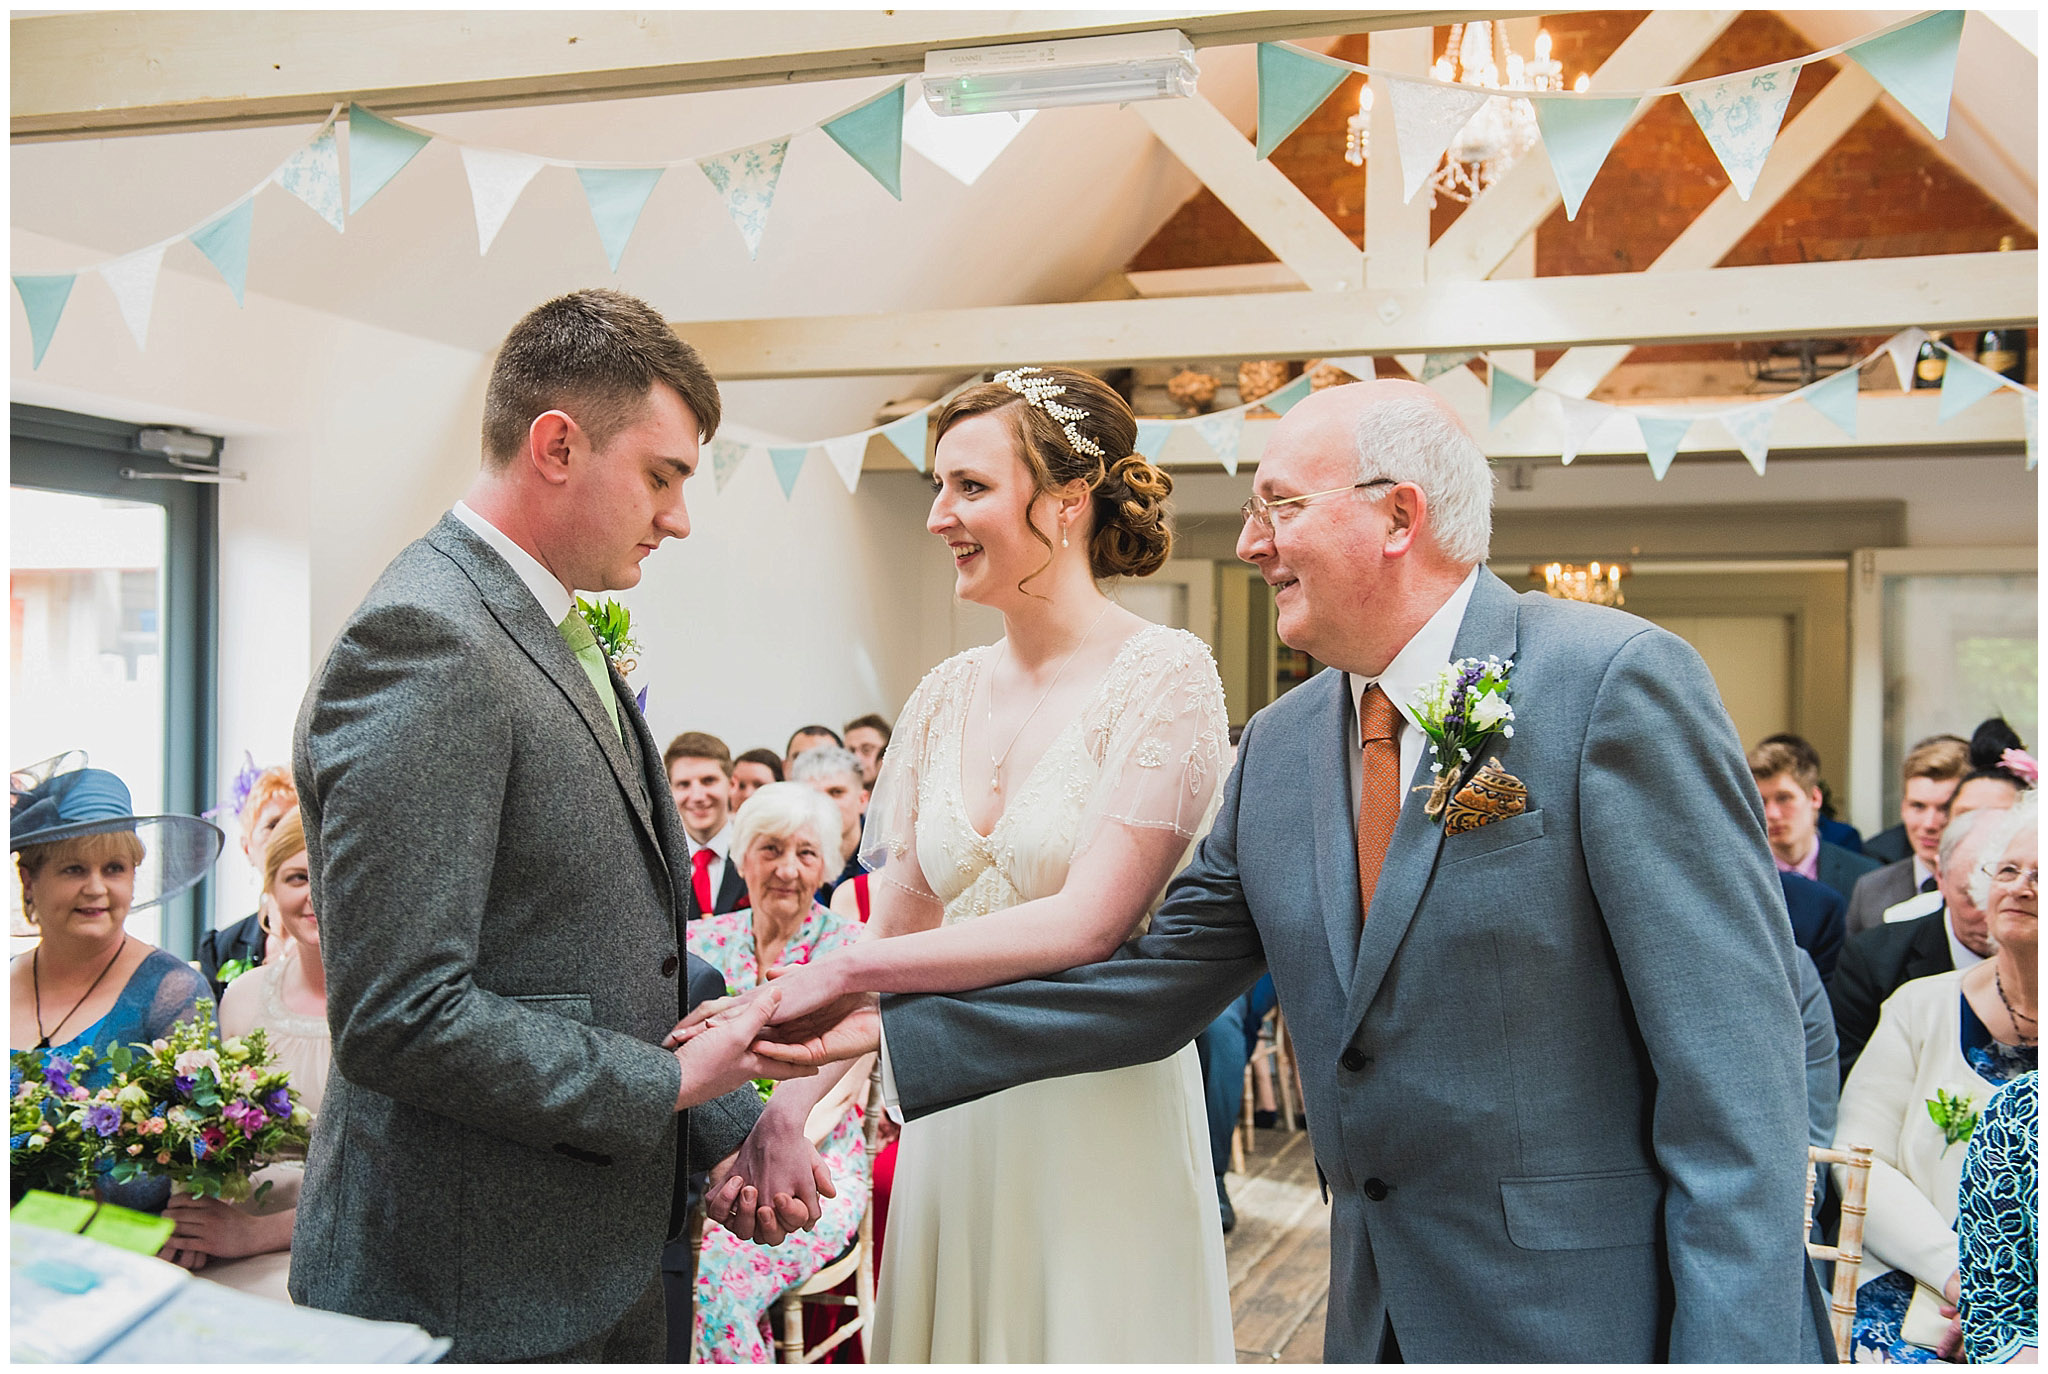 Sarah-&-Dan-The-Old-Vicarage-Wedding-Venue-Dorset-Photographer-14